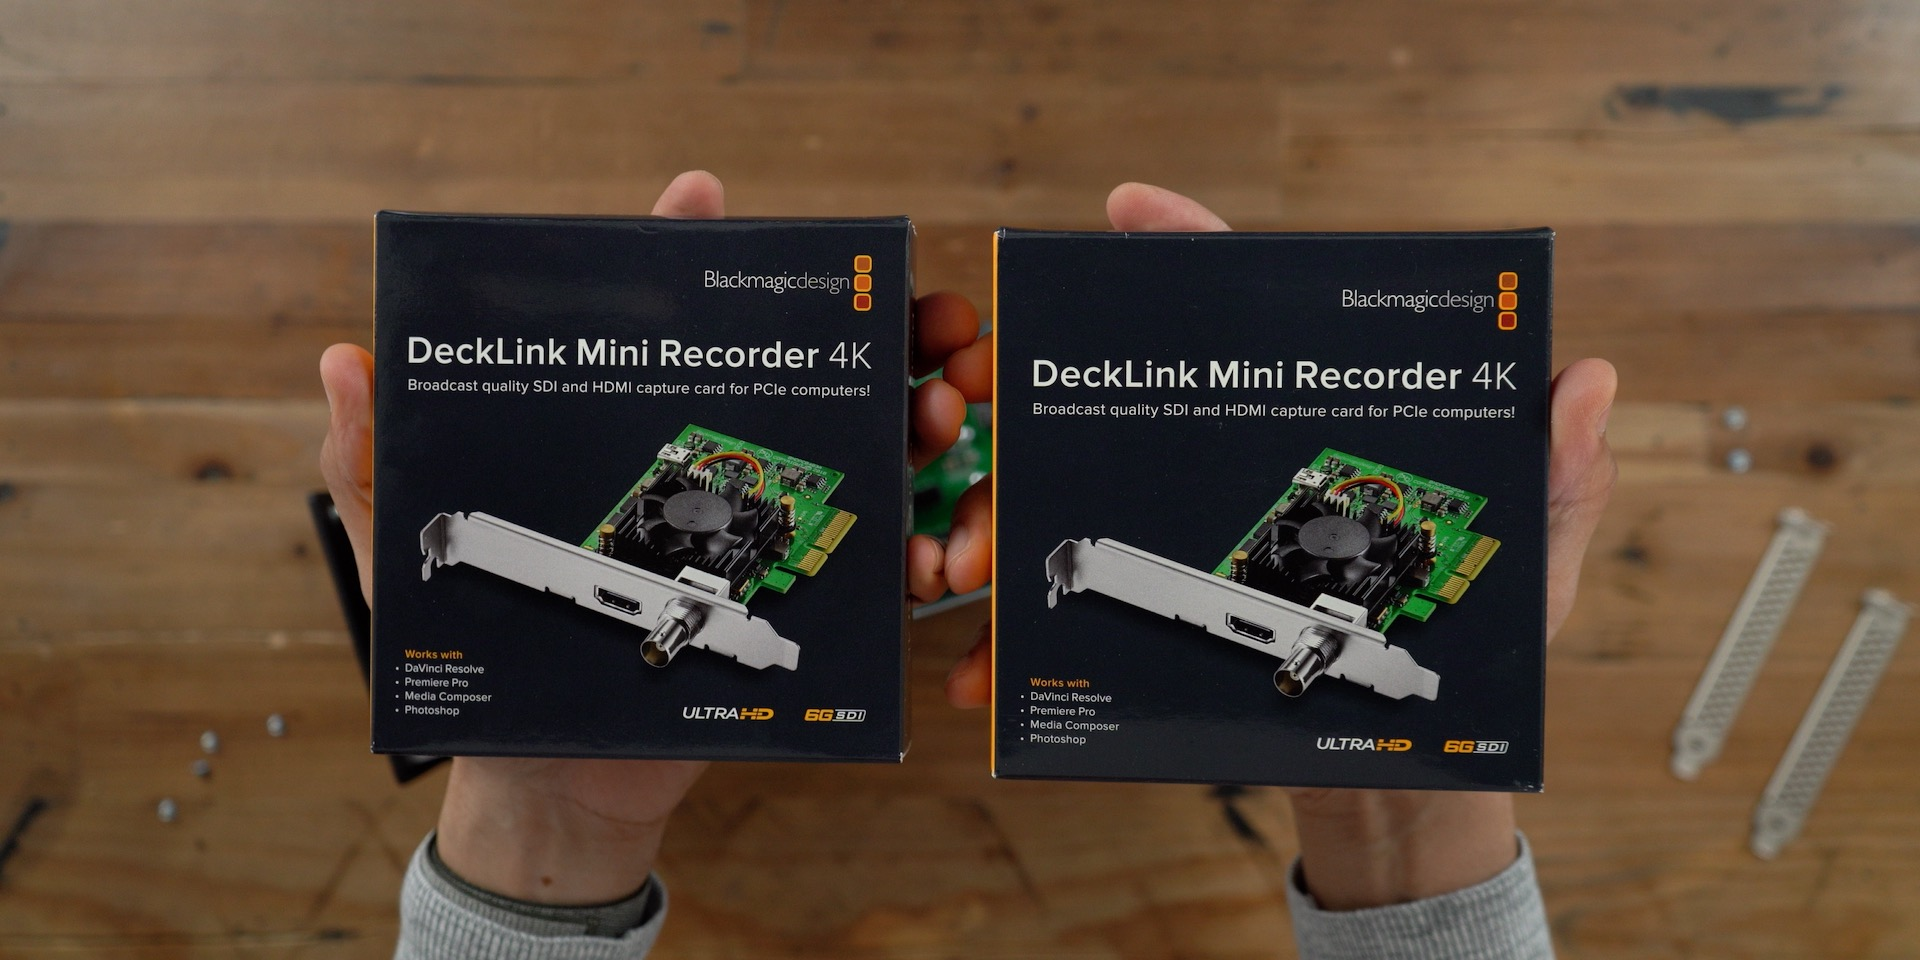 Blackmagic DeckLink Mini Recorder 4K Boxes